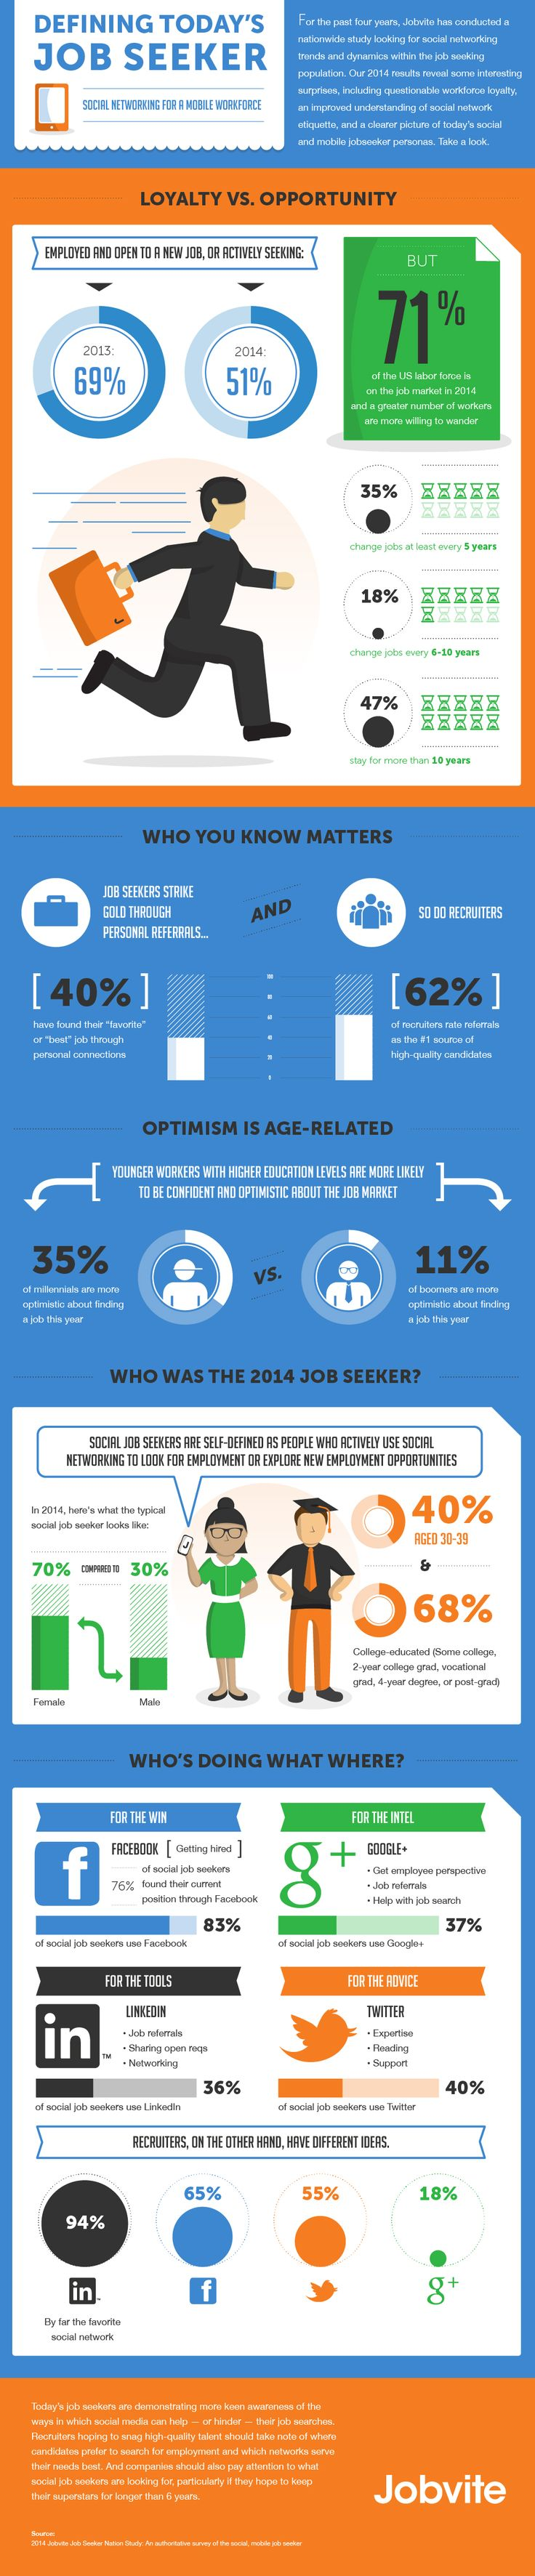 Today's Job Seeker: Social Networking For A Mobile Workforce #INFOGRAPHIC #infografía